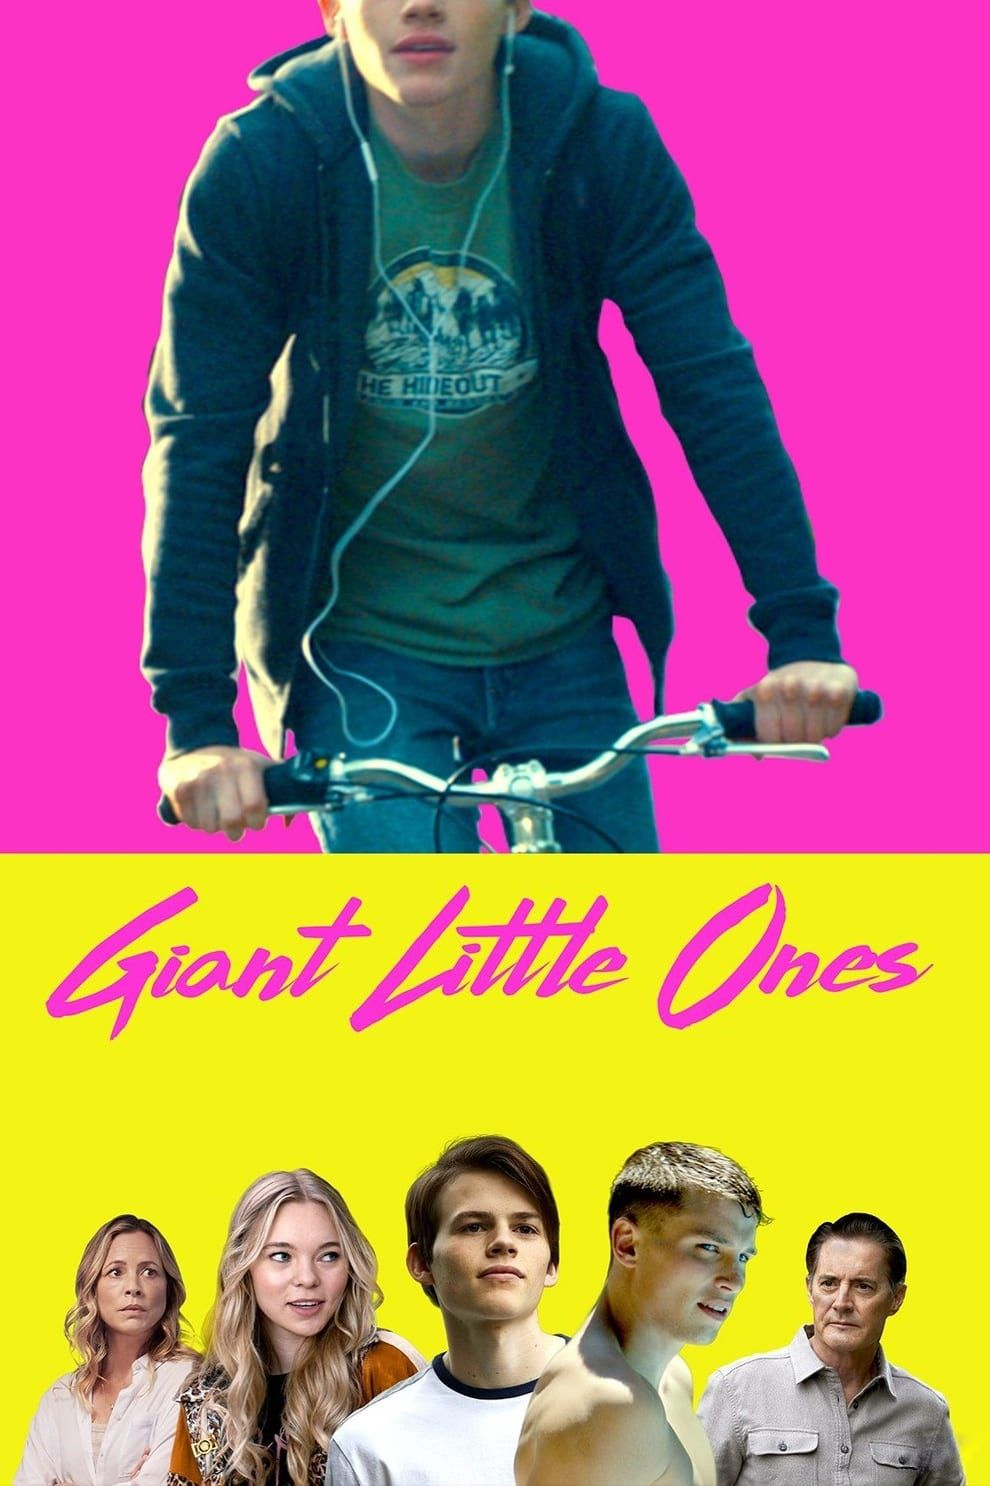 Giant Little Ones Streaming VF complet*** en ligne gratuite Streaming vf  #GiantLittleOnes # #movie #fullmovie #streamingonline #movies